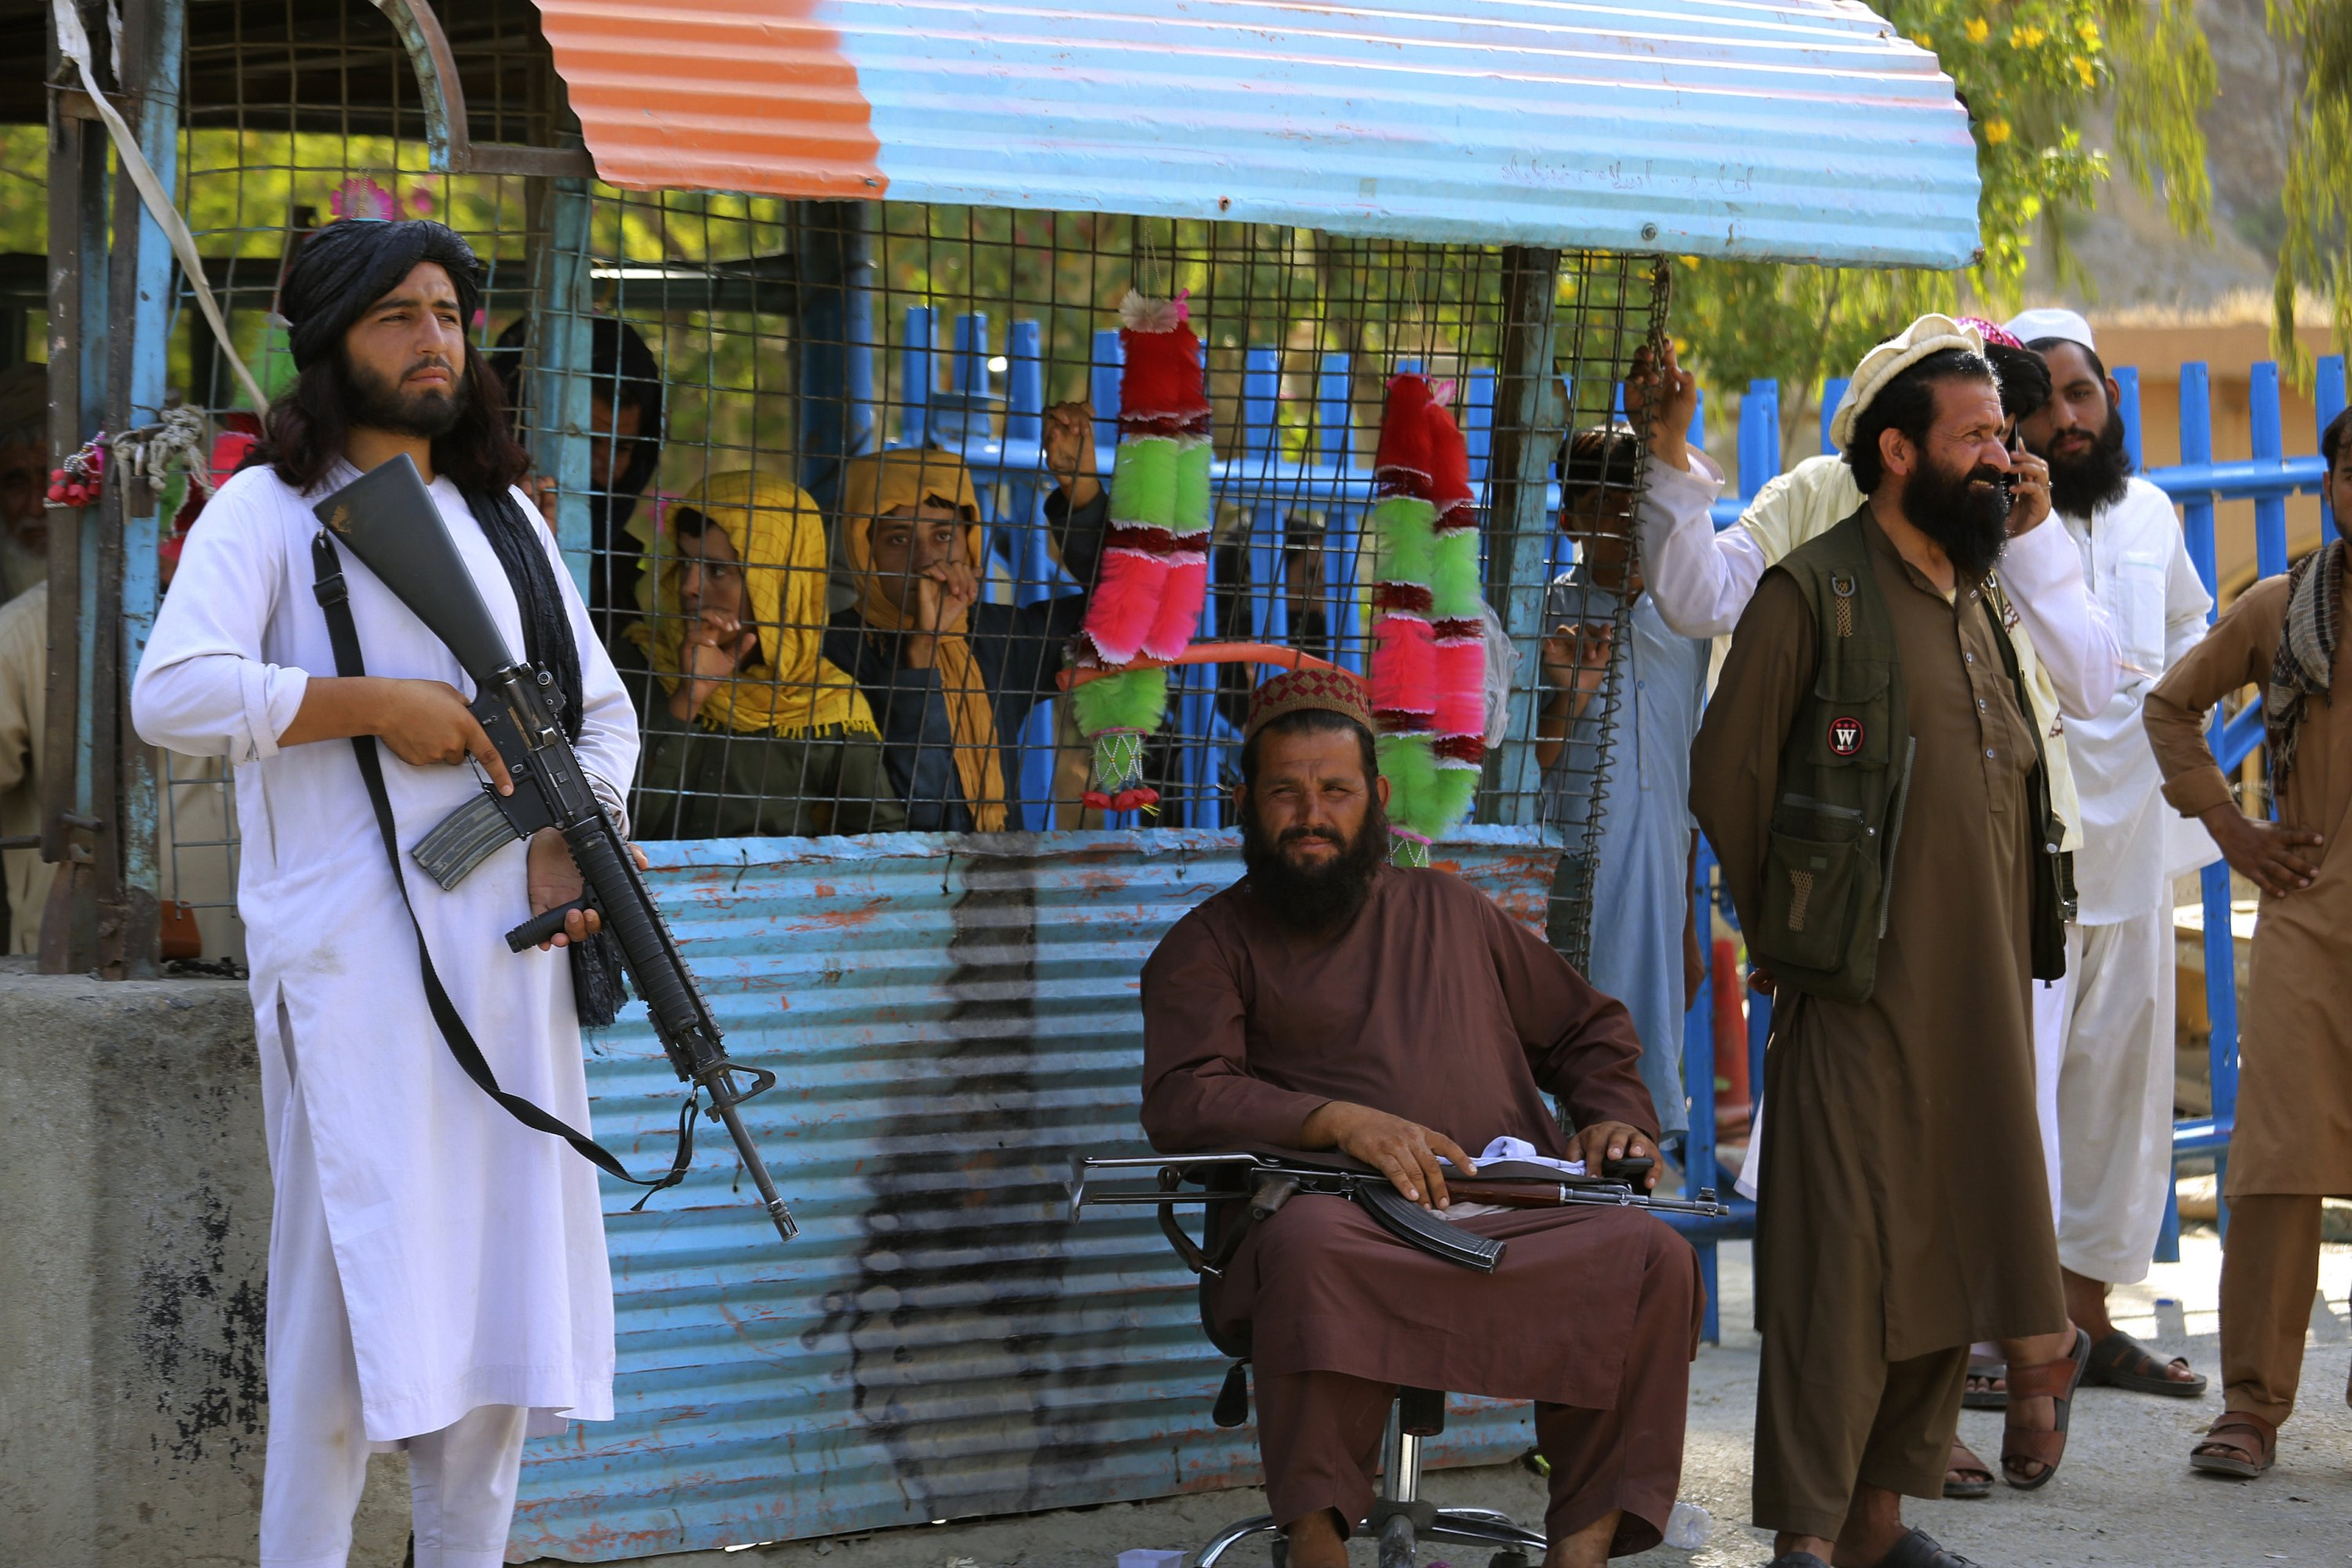 Taliban fighters stand guard on their side at a border crossing point between Pakistan and Afghanistan, in Torkham, Khyber district, Pakistan, Saturday, Aug. 21, 2021. (AP Photo)